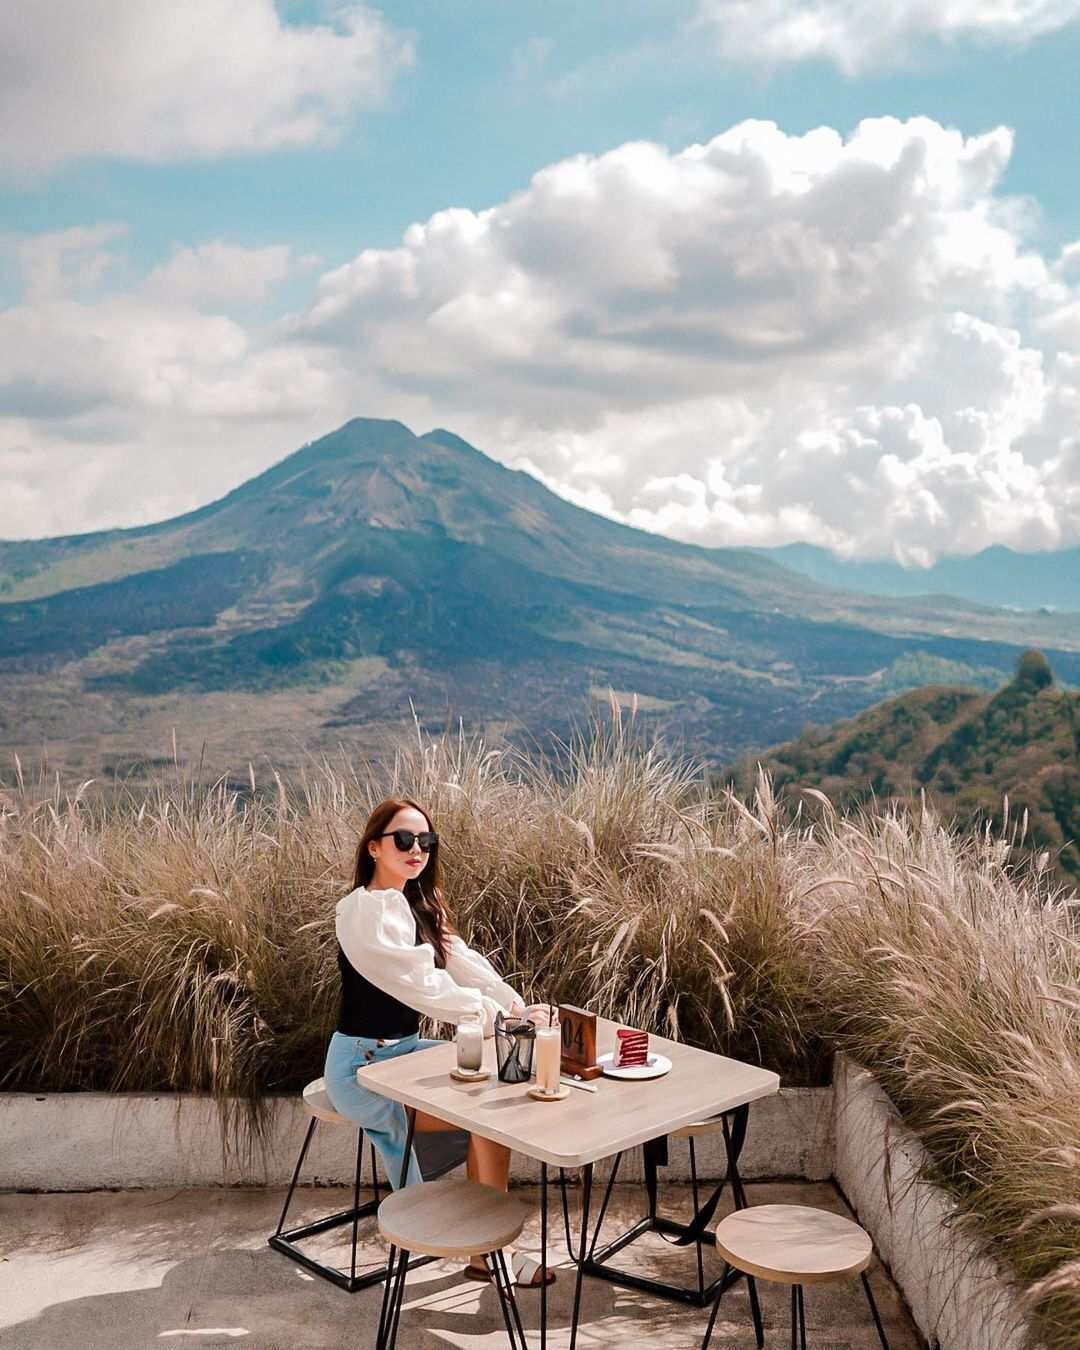 Berfoto Dengan Background Gunung di Montana Del Cafe, Image From @intanangsa